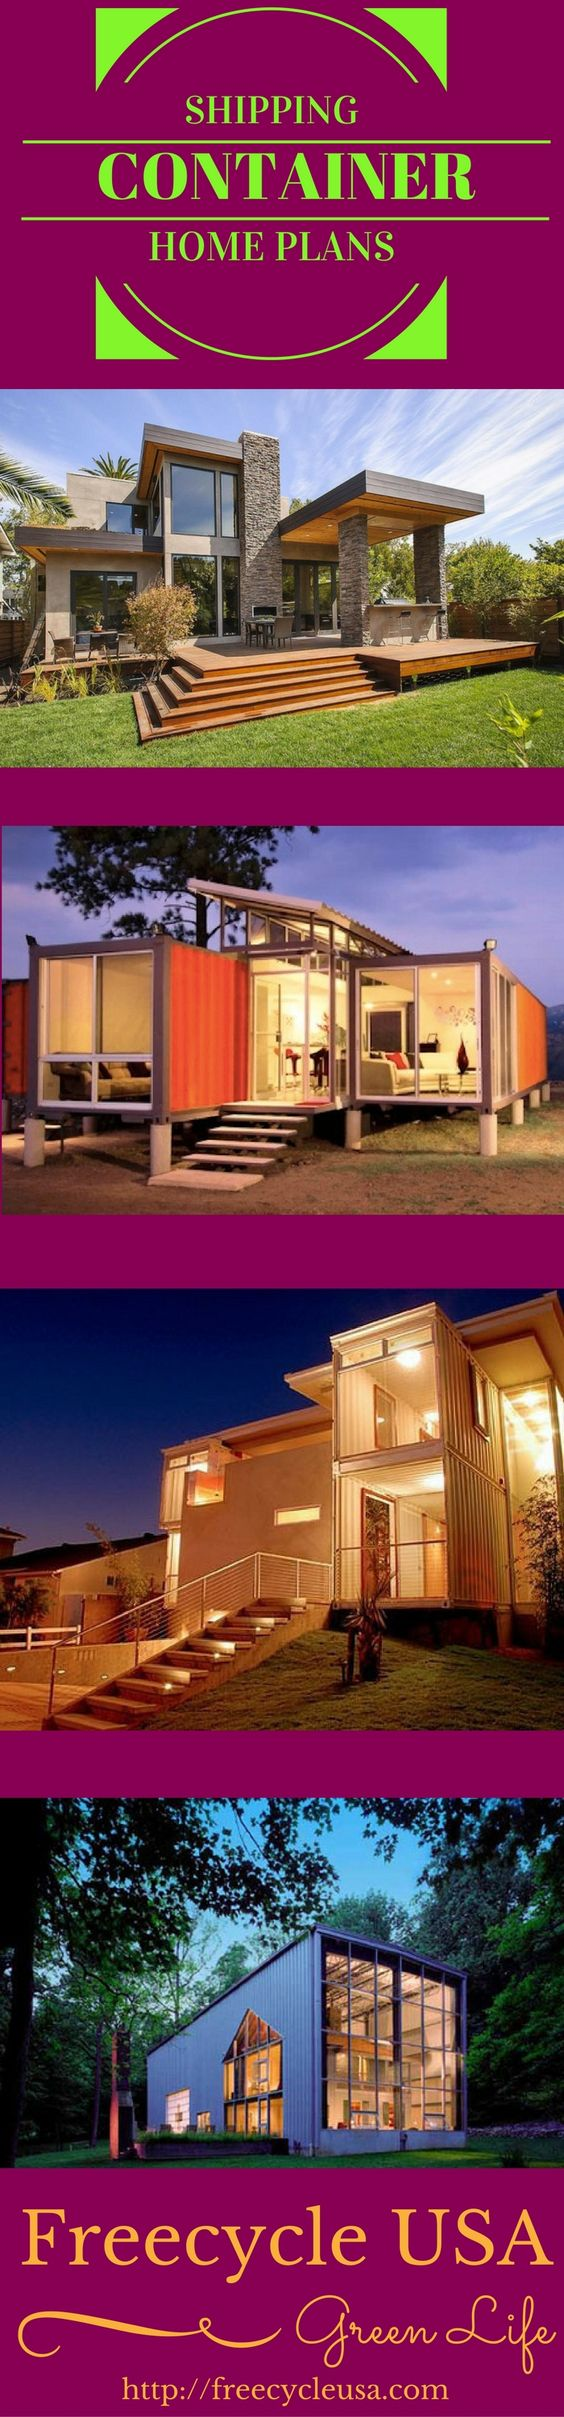 Beautiful Container Homes that can be built for pennies on the dollar. Find out more on how you can build your own Shipping Container Home.